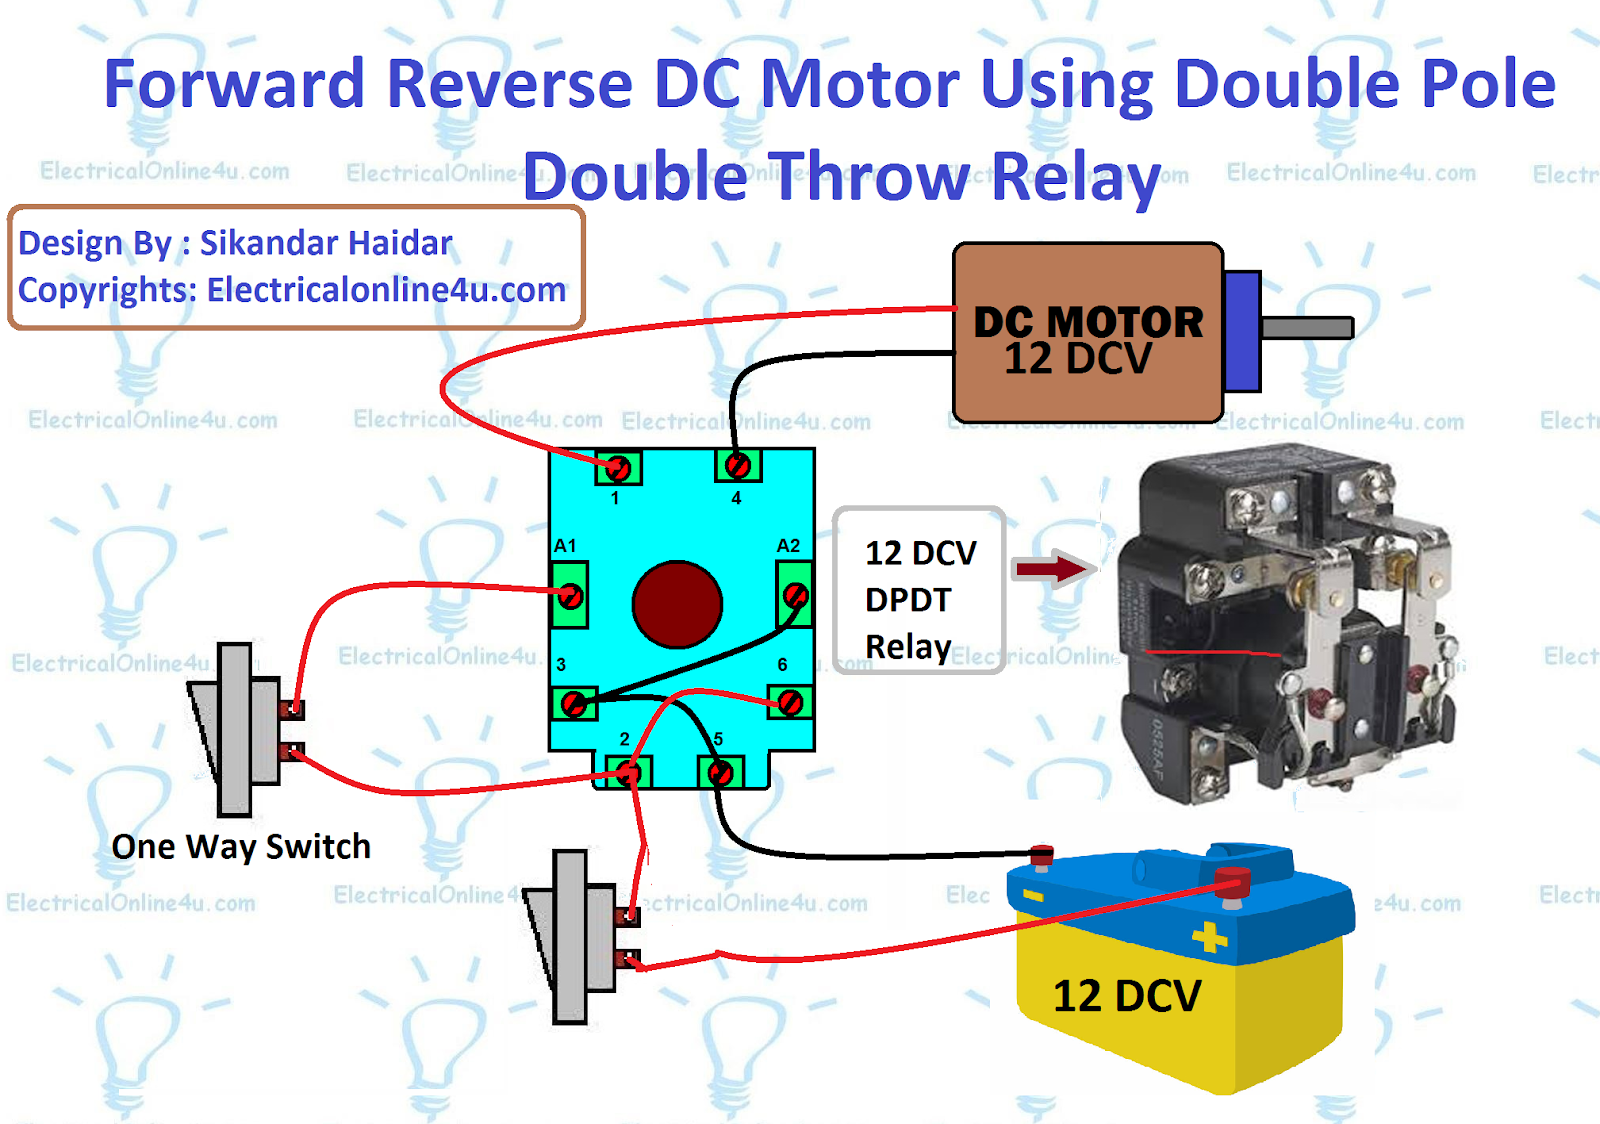 [SCHEMATICS_44OR]  Forward Reverse DC Motor Using Relay - Electricalonline4u | 12 Volt Double Pole Double Throw Relay Wiring Diagram |  | Electricalonline4u